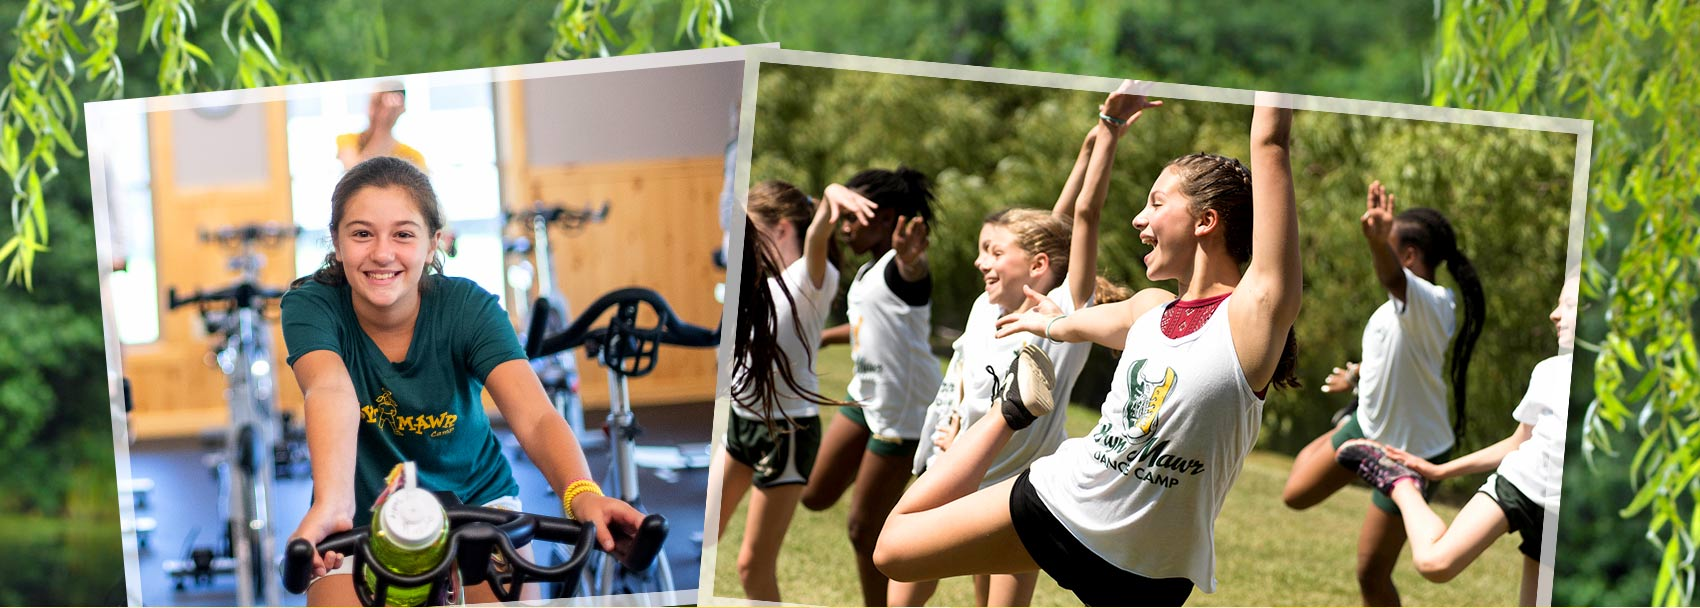 Dance and Fitness at Camp Bryn Mawr